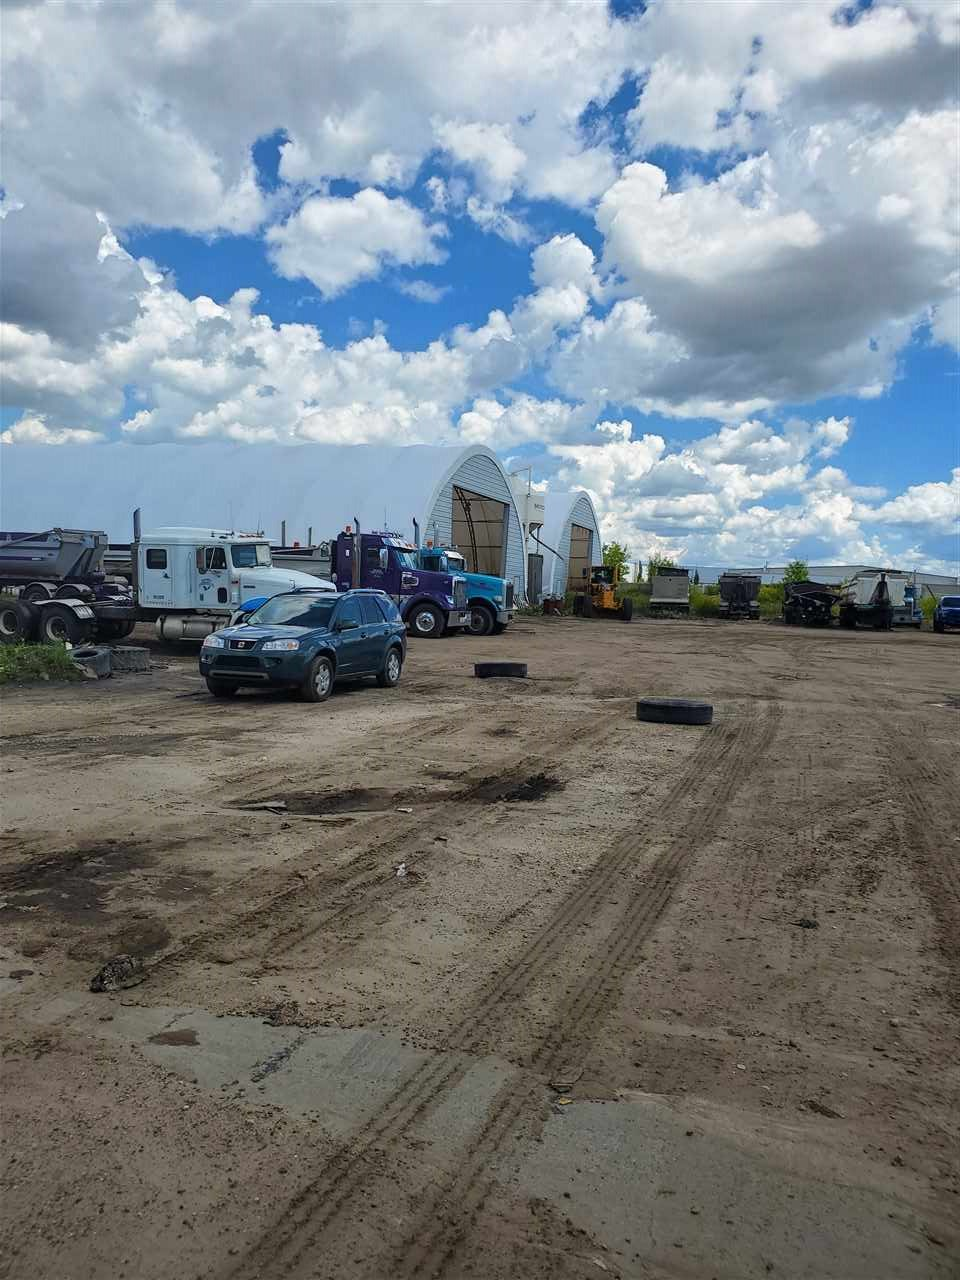 FENCED AND GATED CLOSE TO 5 ACRES OF INDUSTRIAL USE LAND WITH WATER AND ELECTRICAL SERVICES FROM CITY OF EDMONTON .Rectangular parcel with 4000+ SQ FT BUILDING AND QUONSETS.READY TO START YOUR OPERATIONS.CLOSE TO ALL MAJOR ROADS.